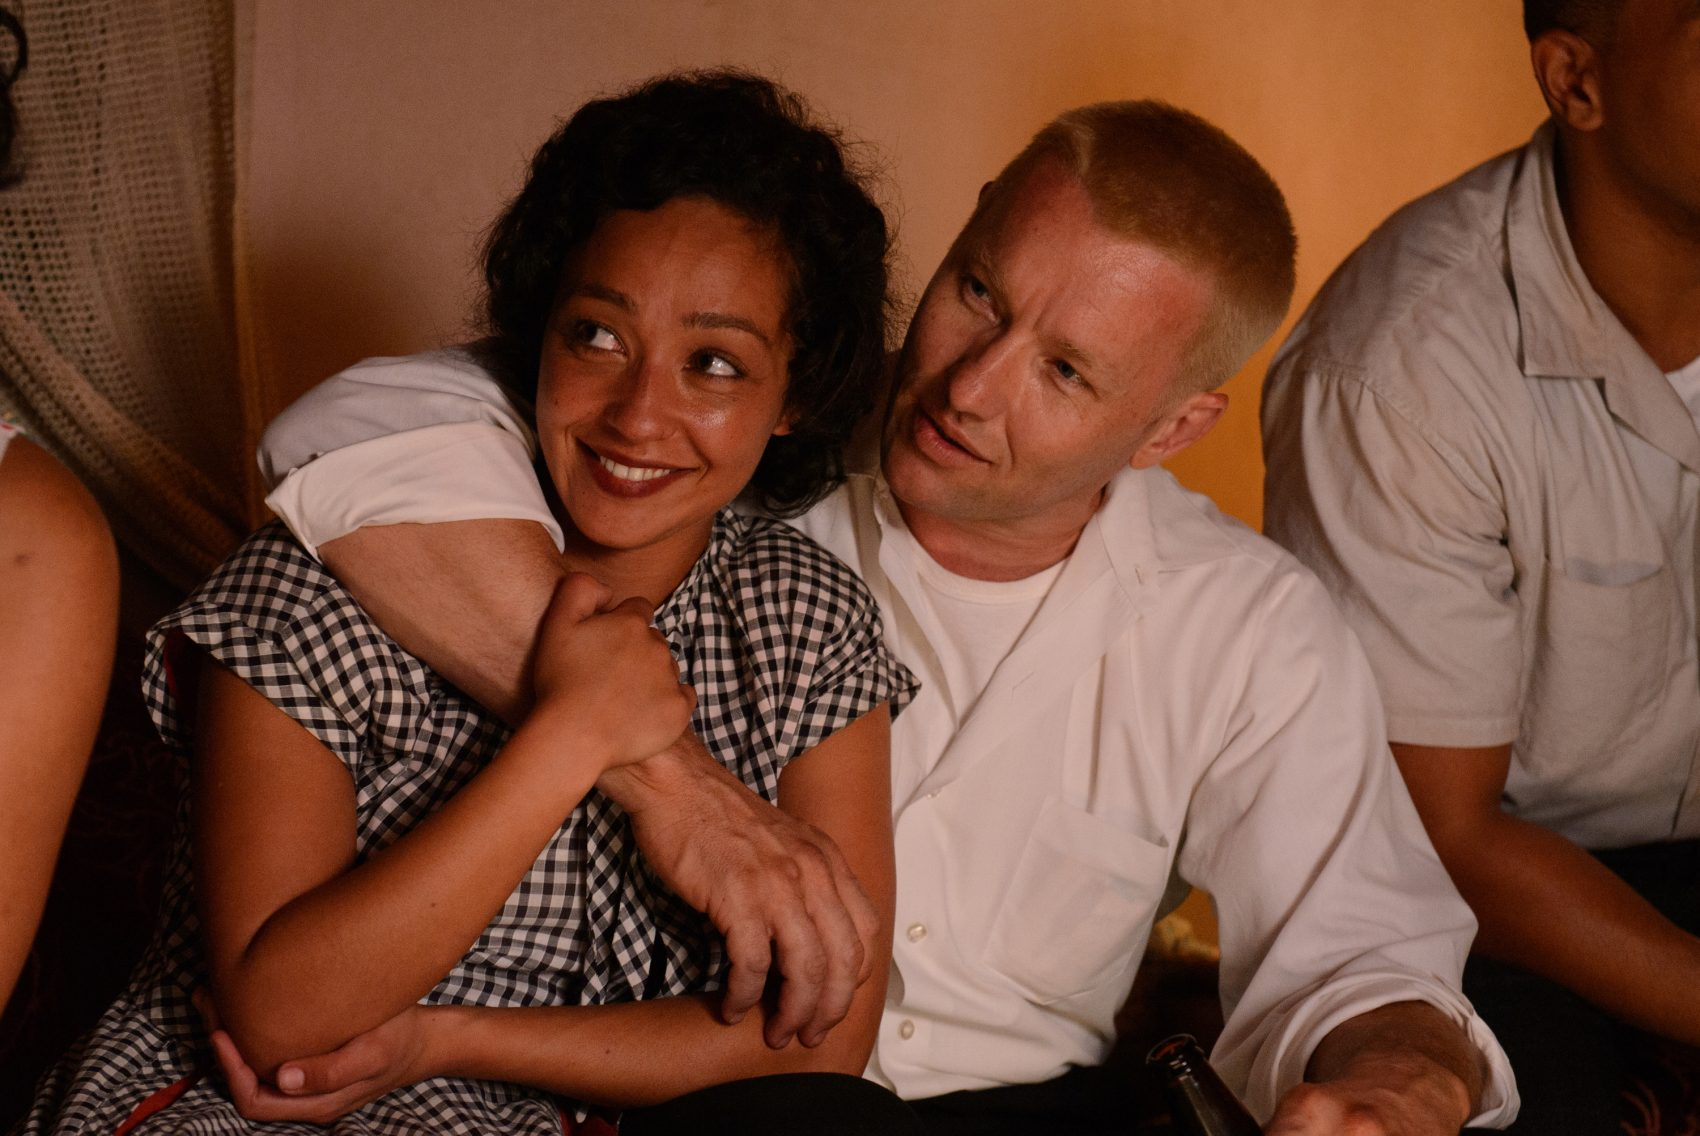 """Ruth Negga (left) and Joel Edgerton (right) as Mildred and Richard Loving in the film """"Loving."""" (Courtesy Focus Features)"""